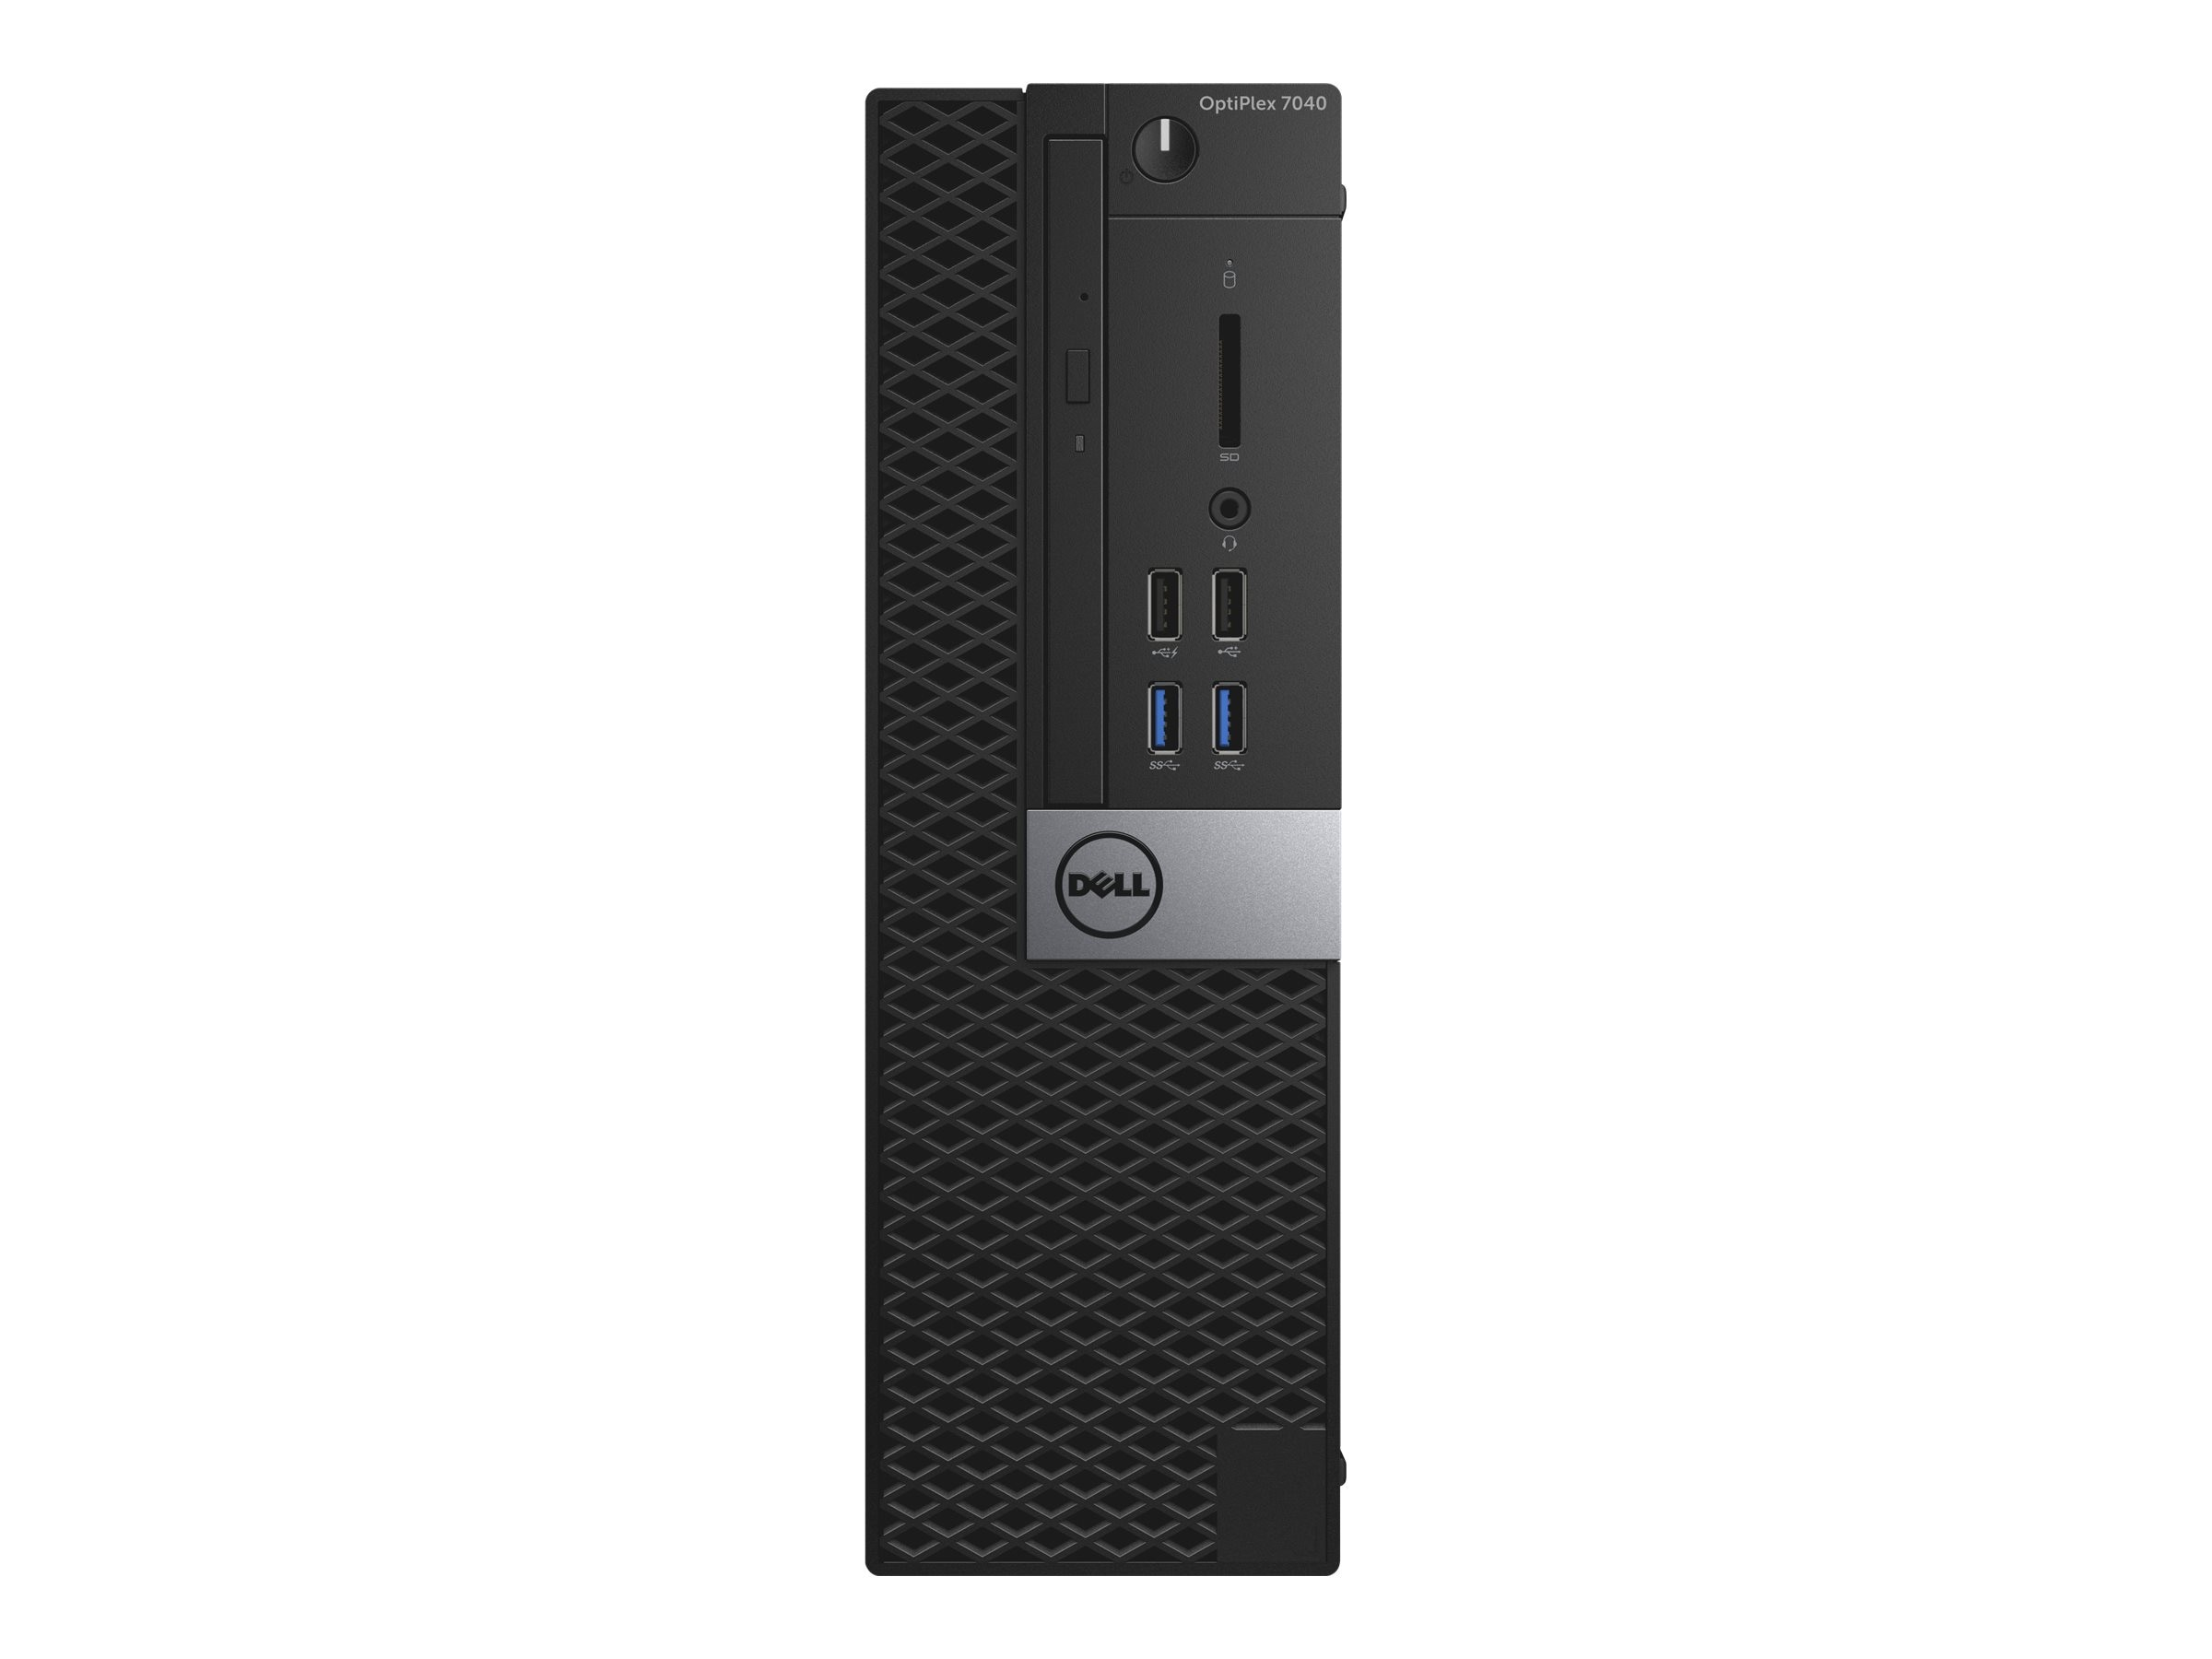 Dell OptiPlex 7040 3.2GHz Core i5 8GB RAM 256GB hard drive, 246J5